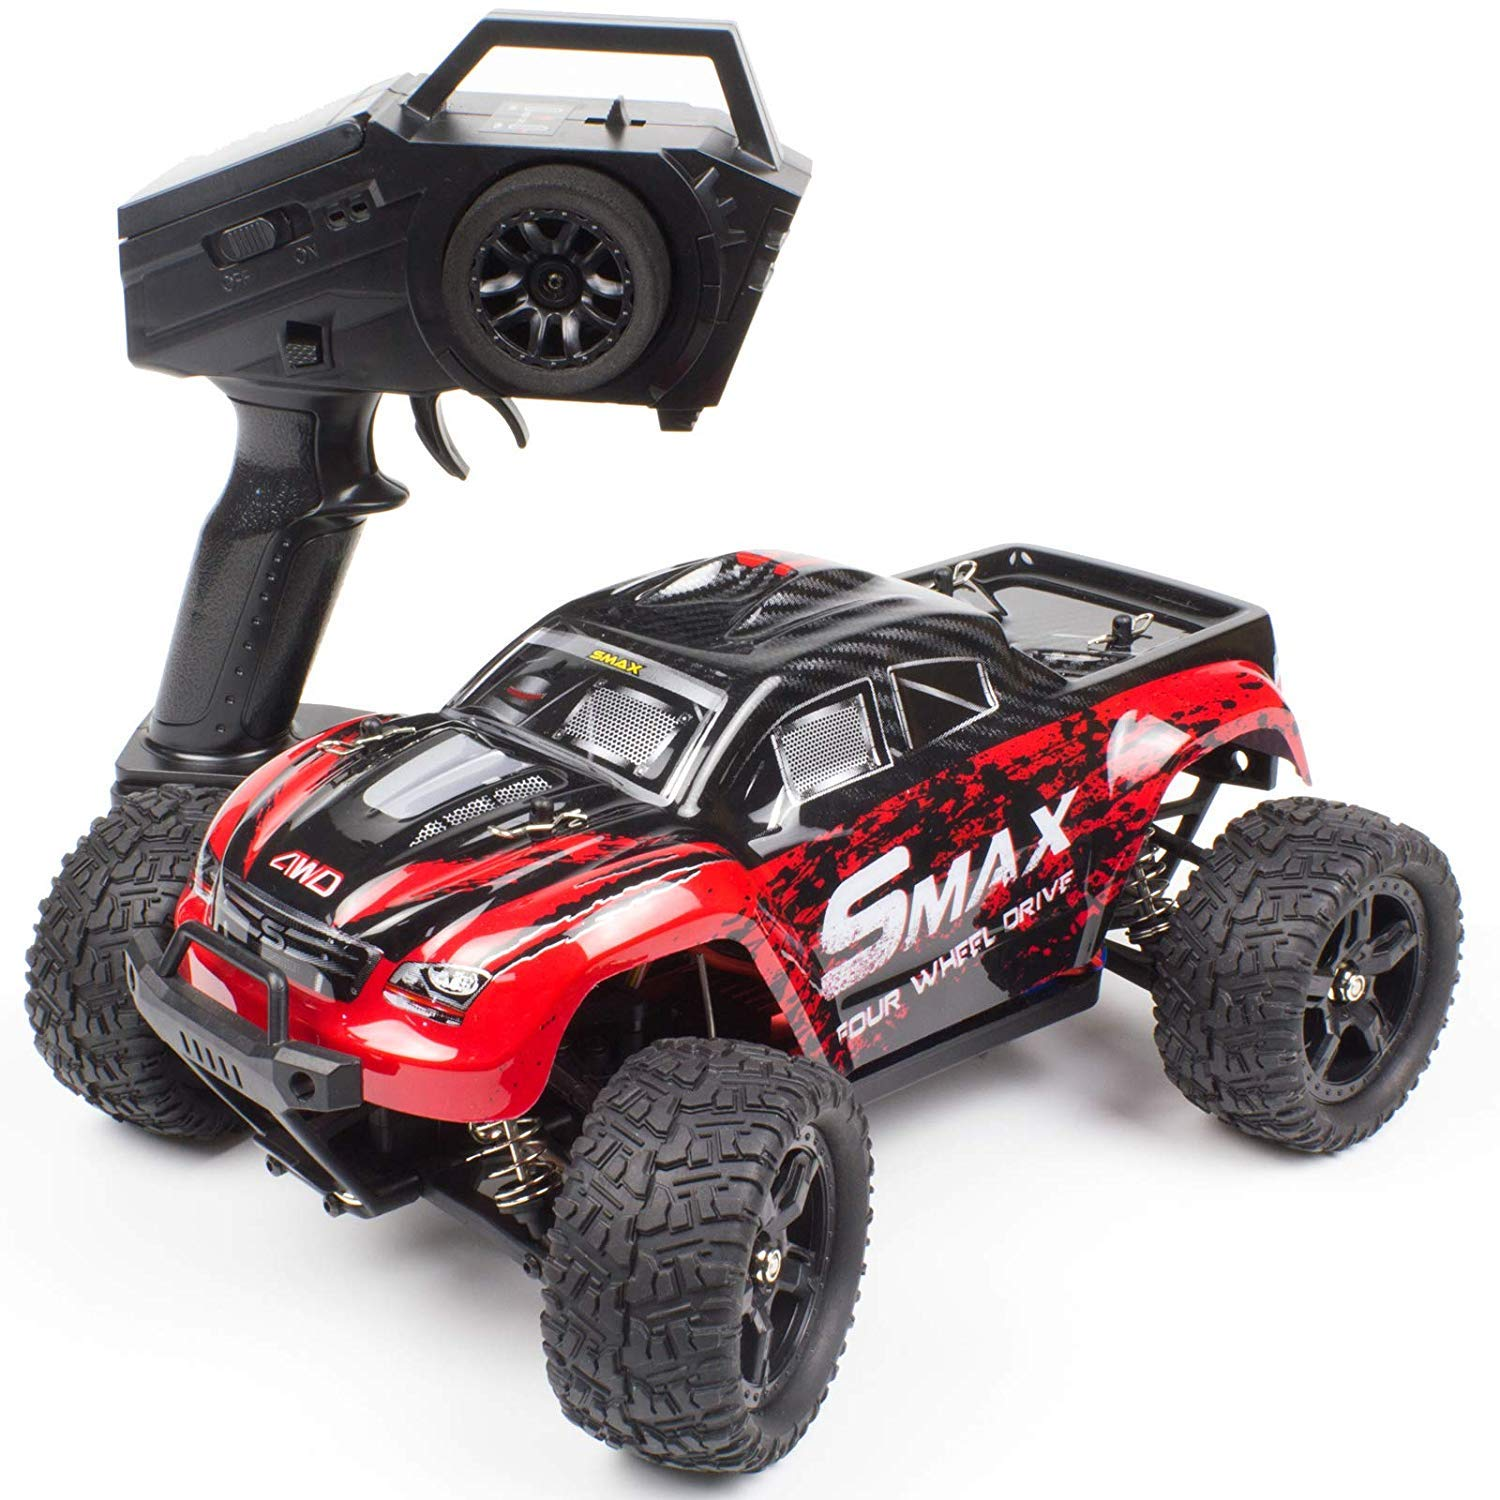 Cheerwing 1:16 2.4Ghz 4WD High Speed RC Off-Road Monster Truck Brushed Remote Control Car, Red New Ver.